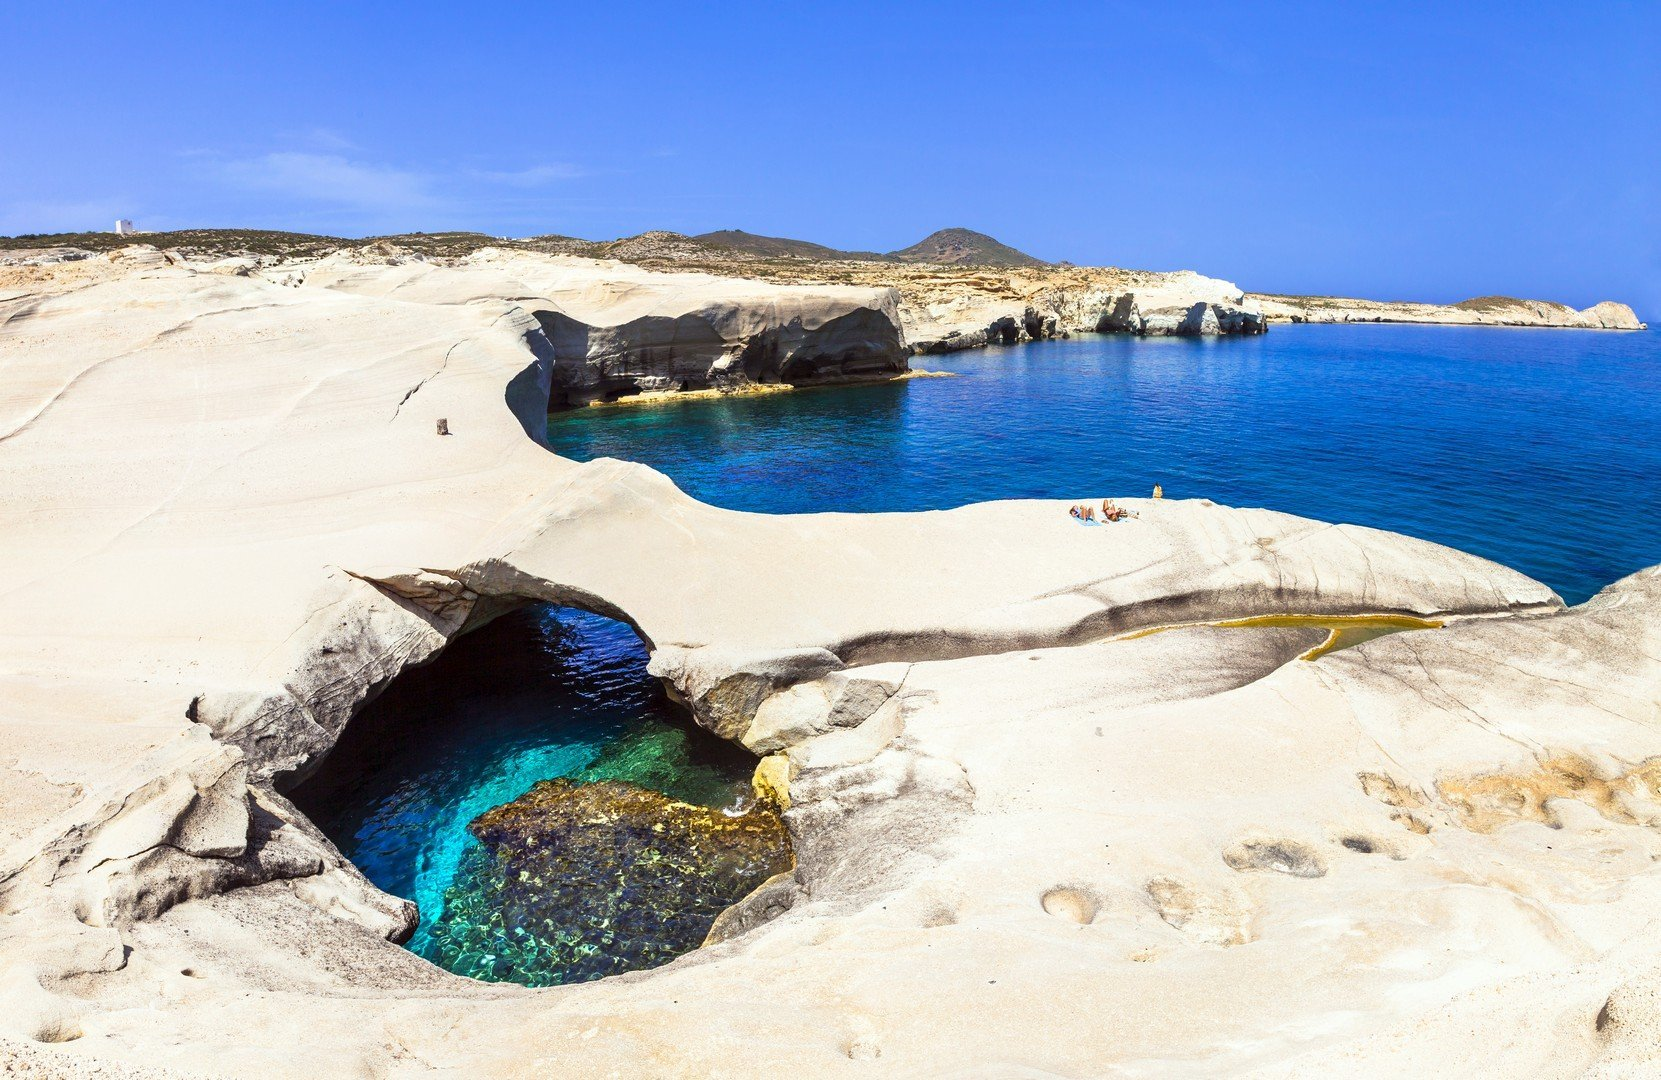 most unusual beaches of Greece - Sarakiniko on Milos island